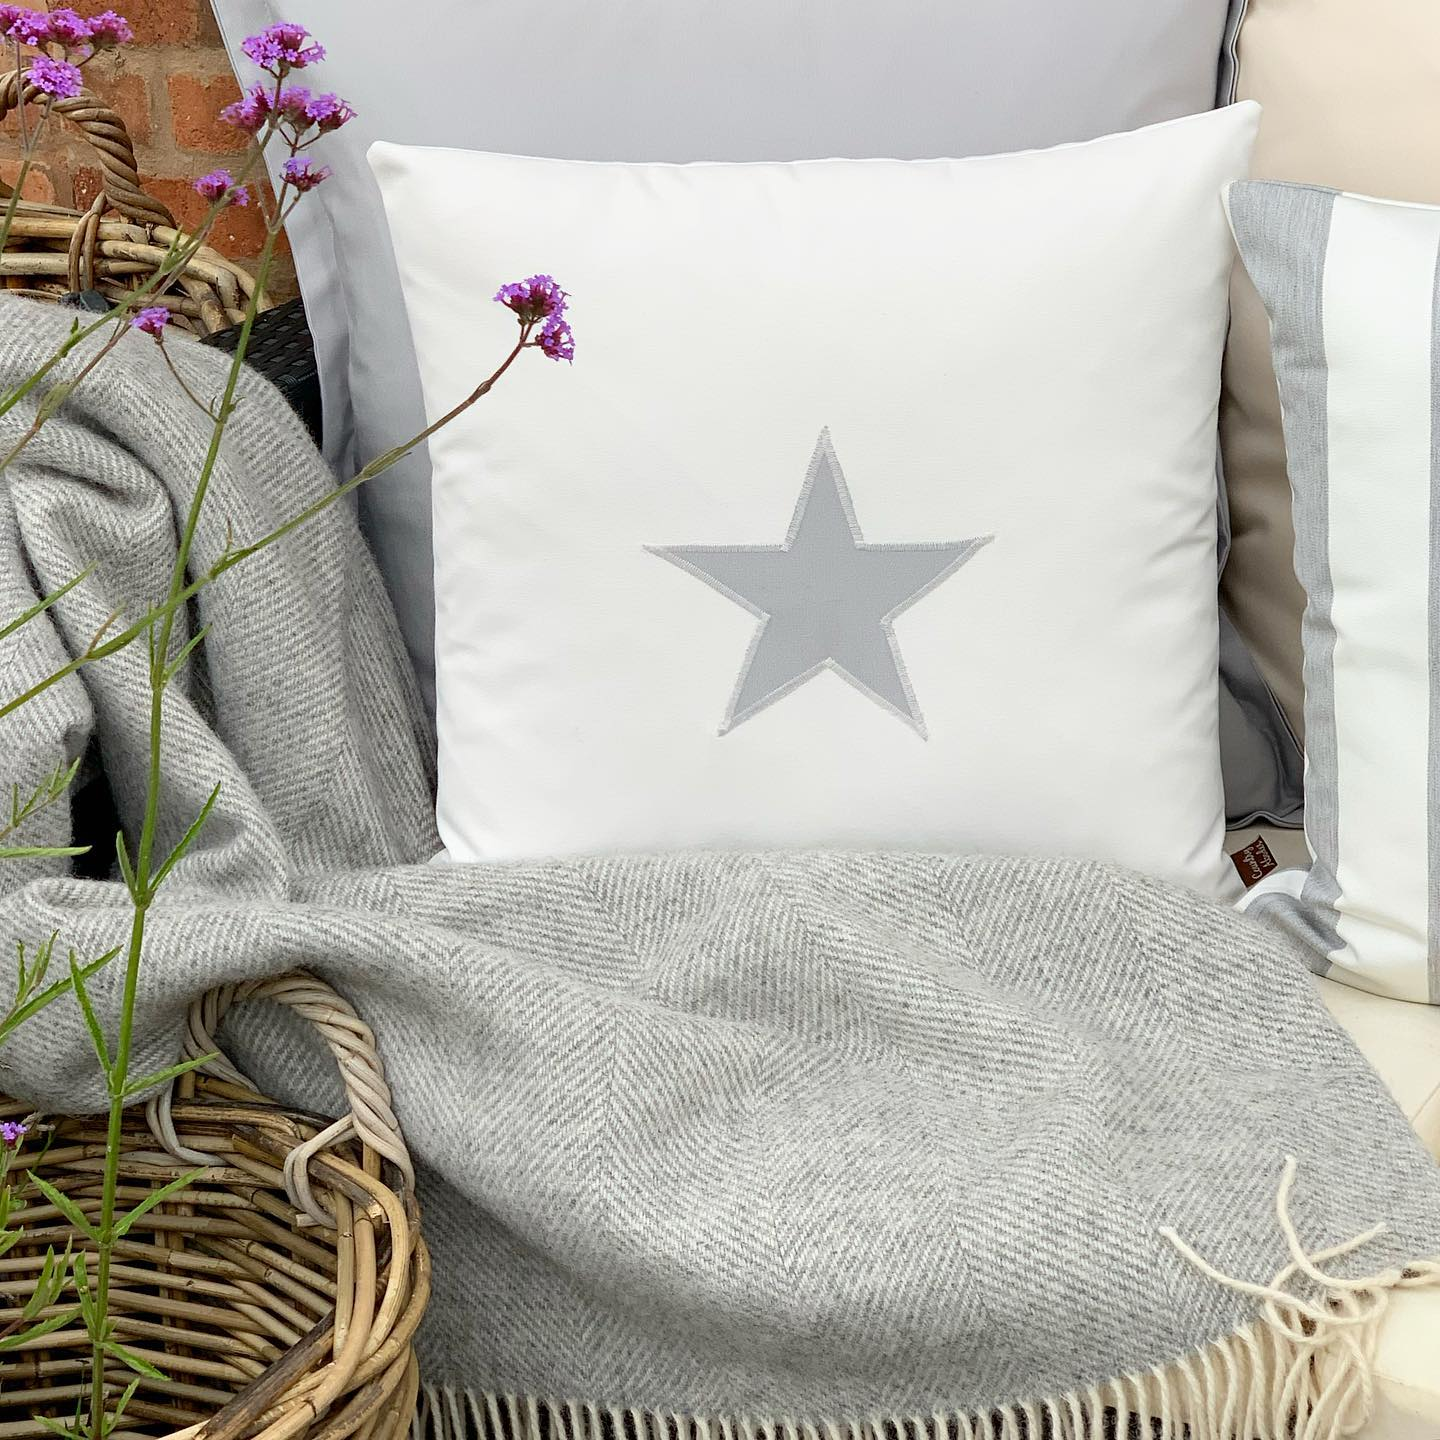 Water Resistant Star Appliquéd Cushion